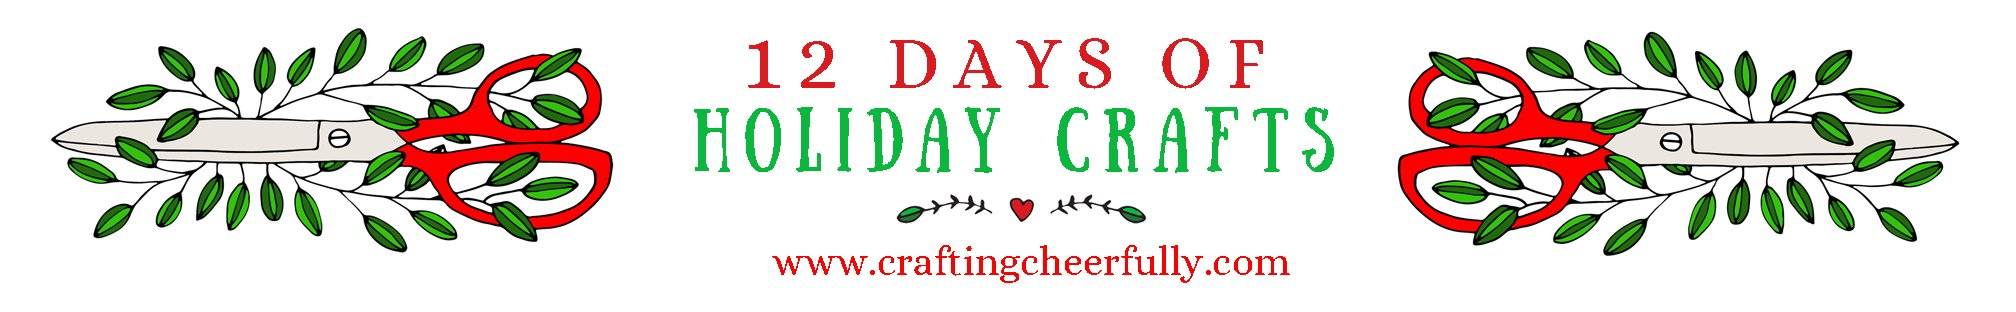 12 Days of Holiday Crafts by Crafting Cheerfully